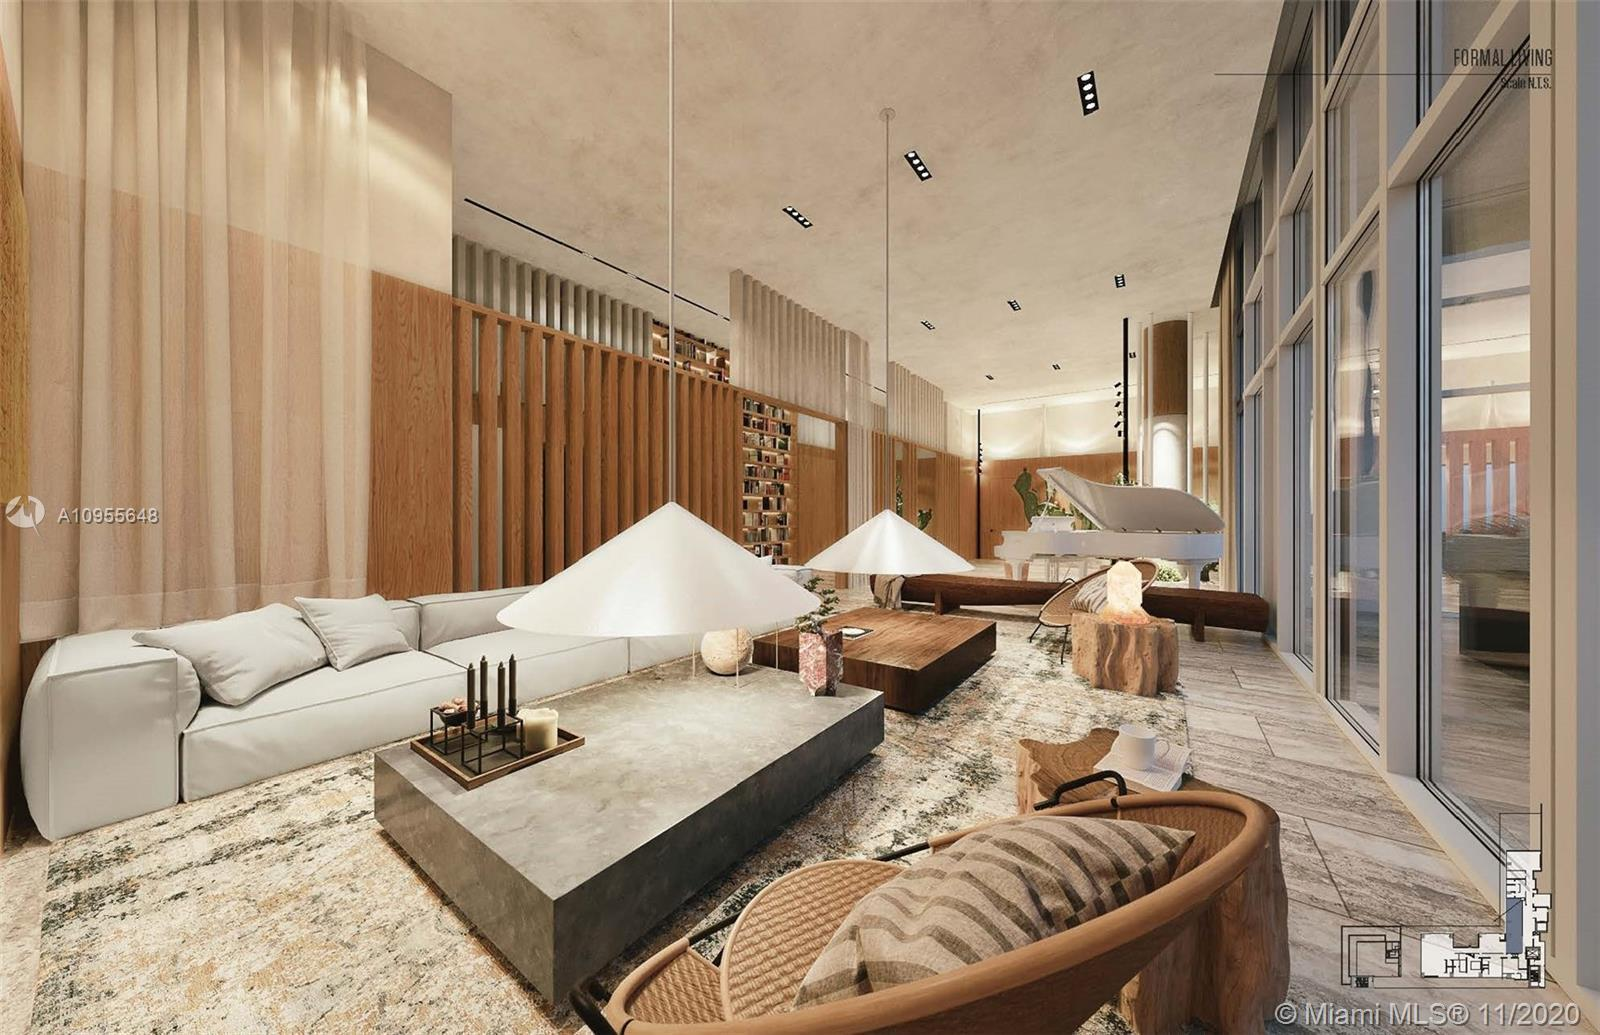 One of the five exclusive penthouses that crown the top floor of The Ritz-Carlton Residences, Miami